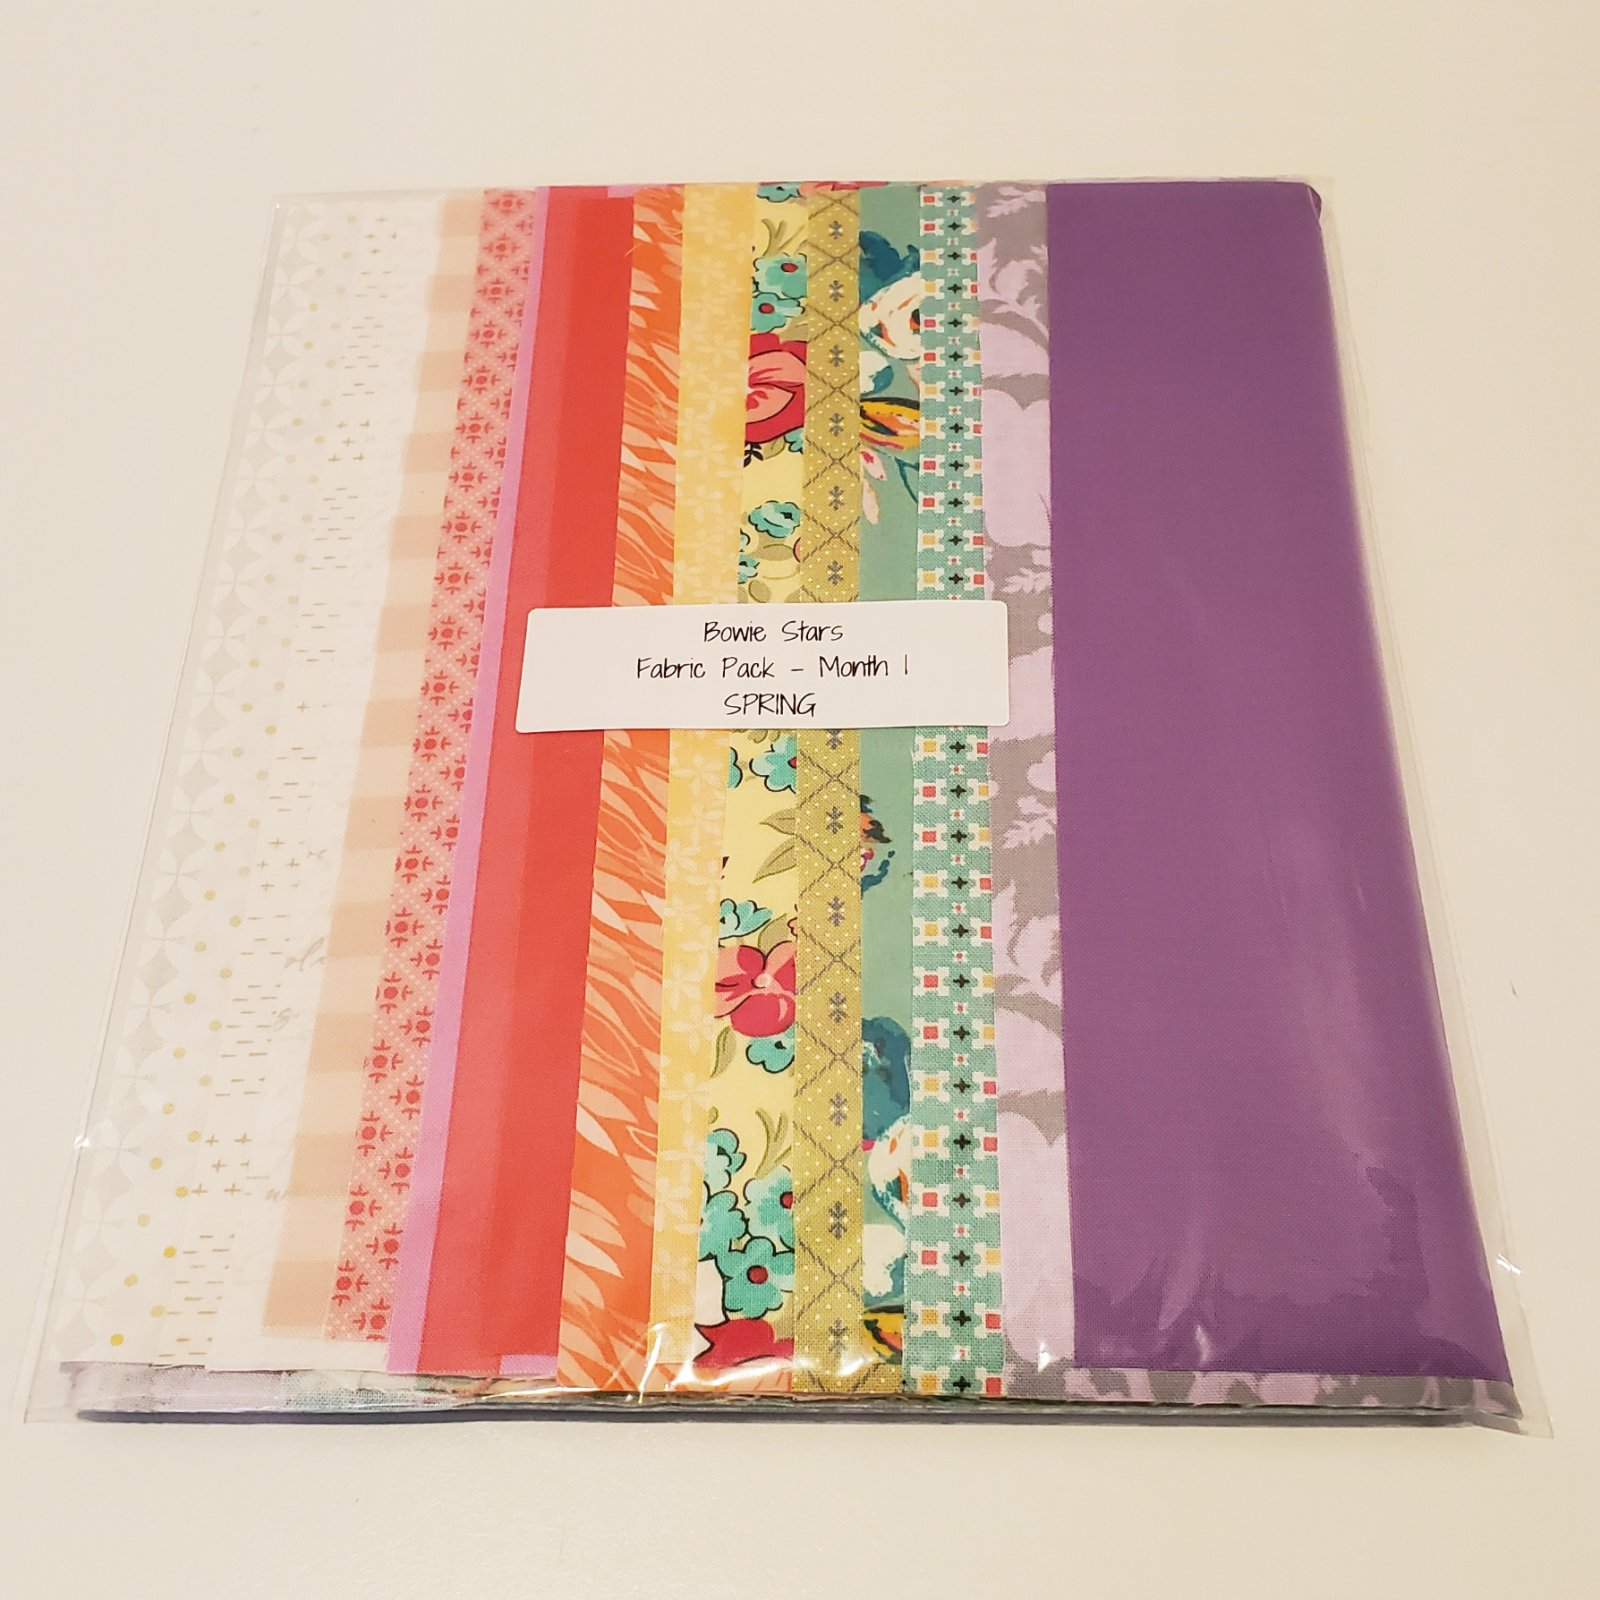 Bowie Stars Fabric Pack Month 1 - Spring